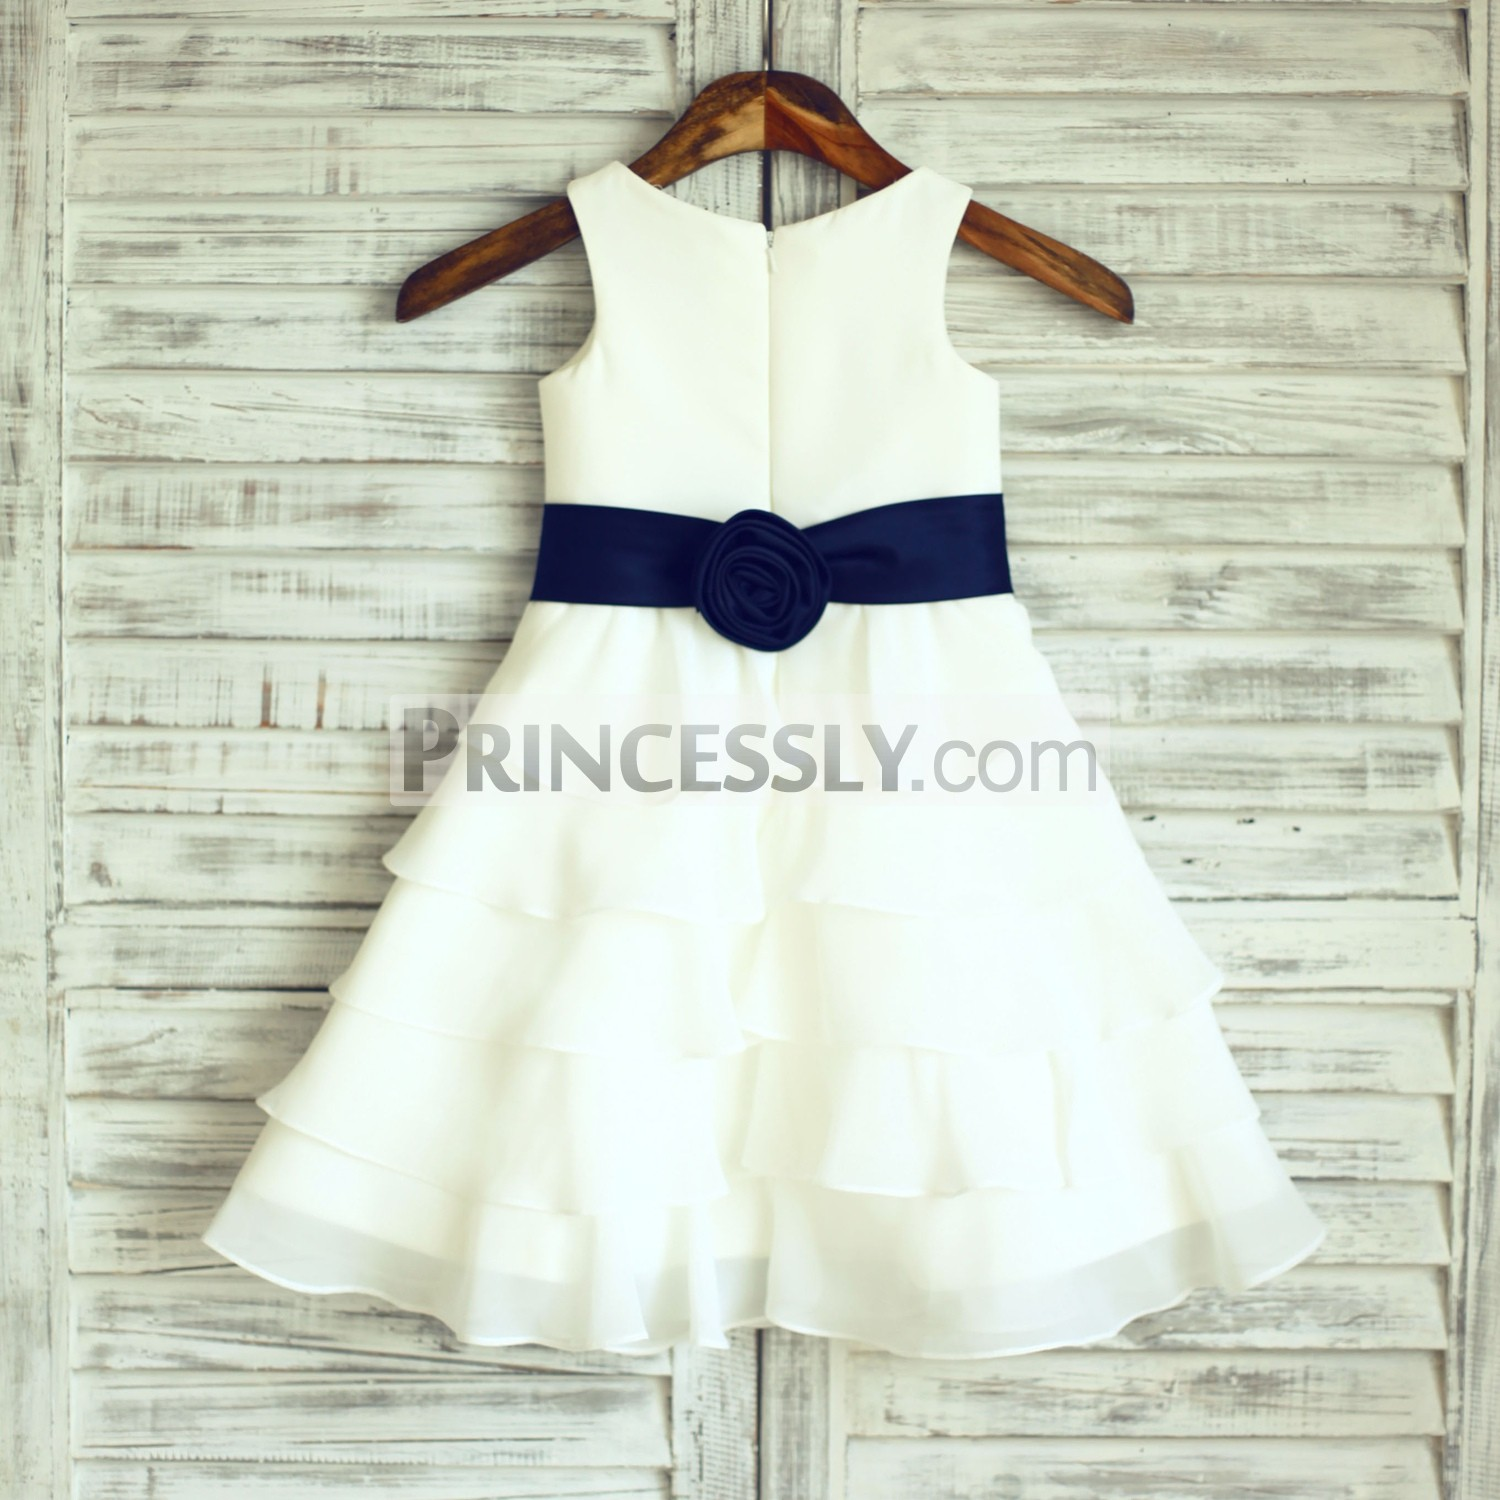 Boho Beach Ivory Chiffon Cupcake Flower Girl Dress With Navy Blue